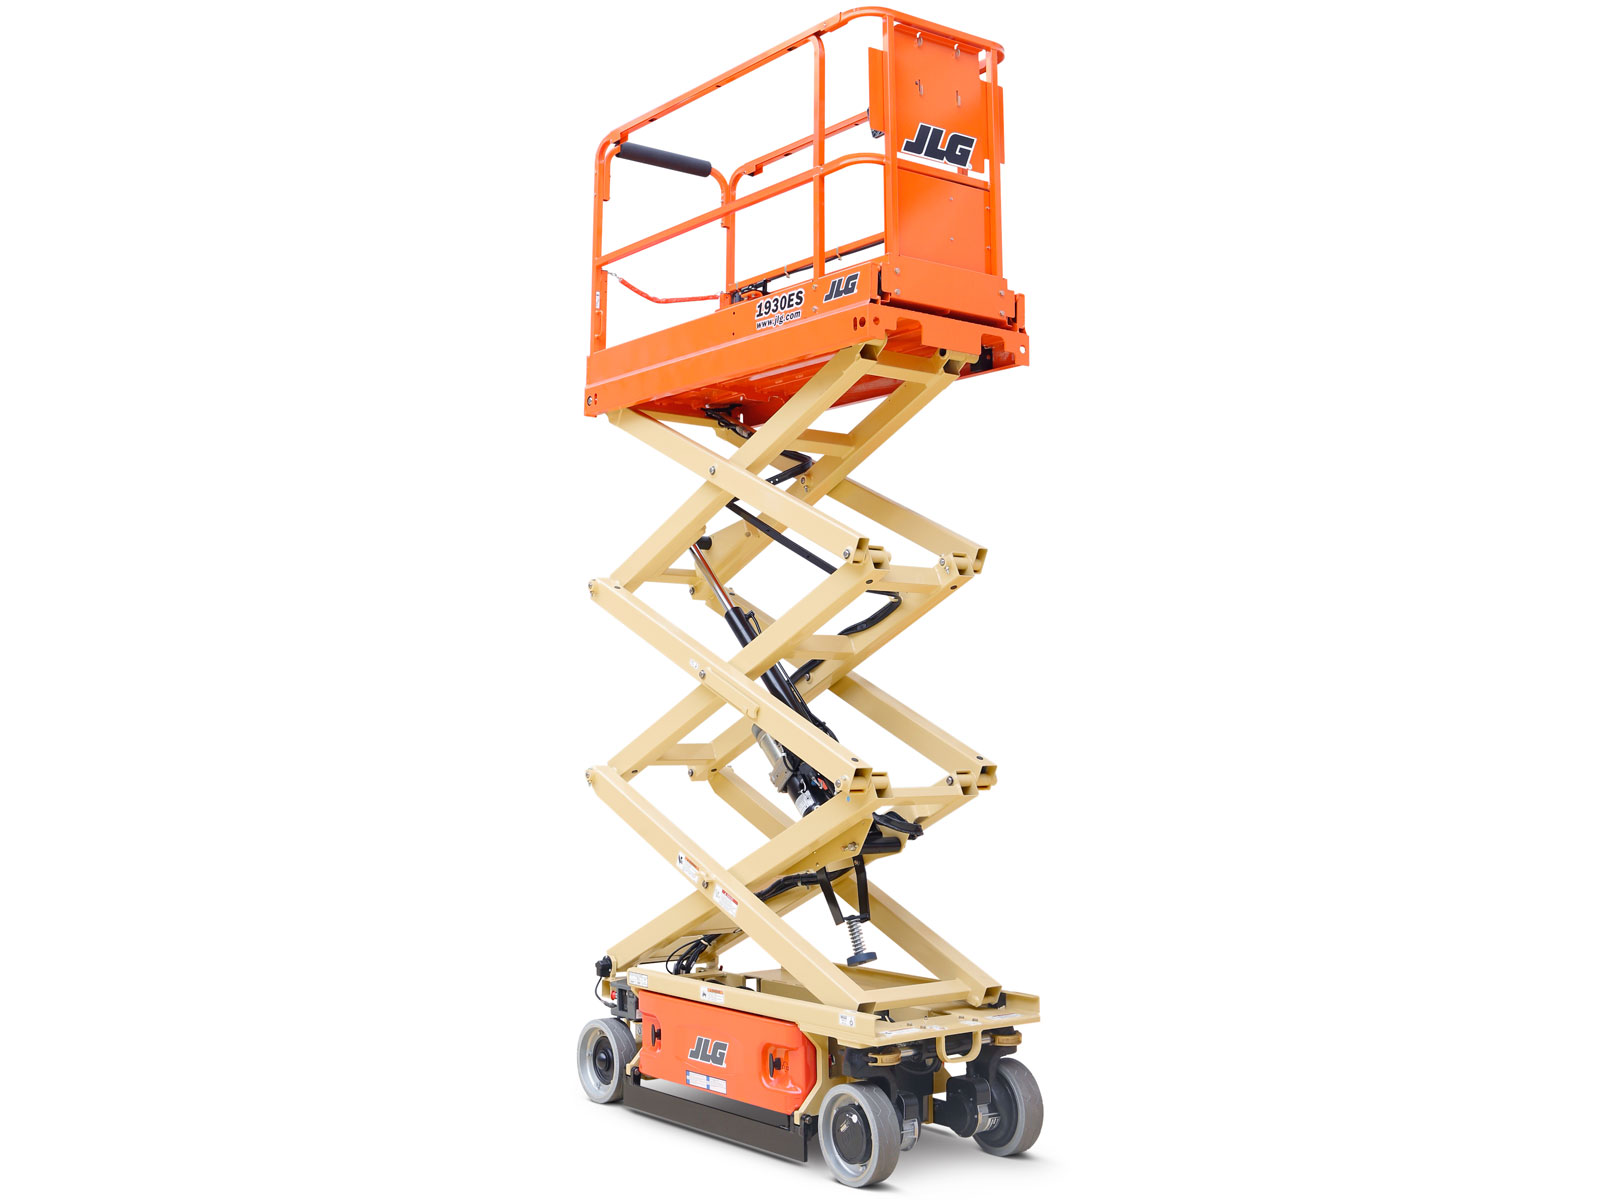 1930es Es Electric Scissor Lift Jlg